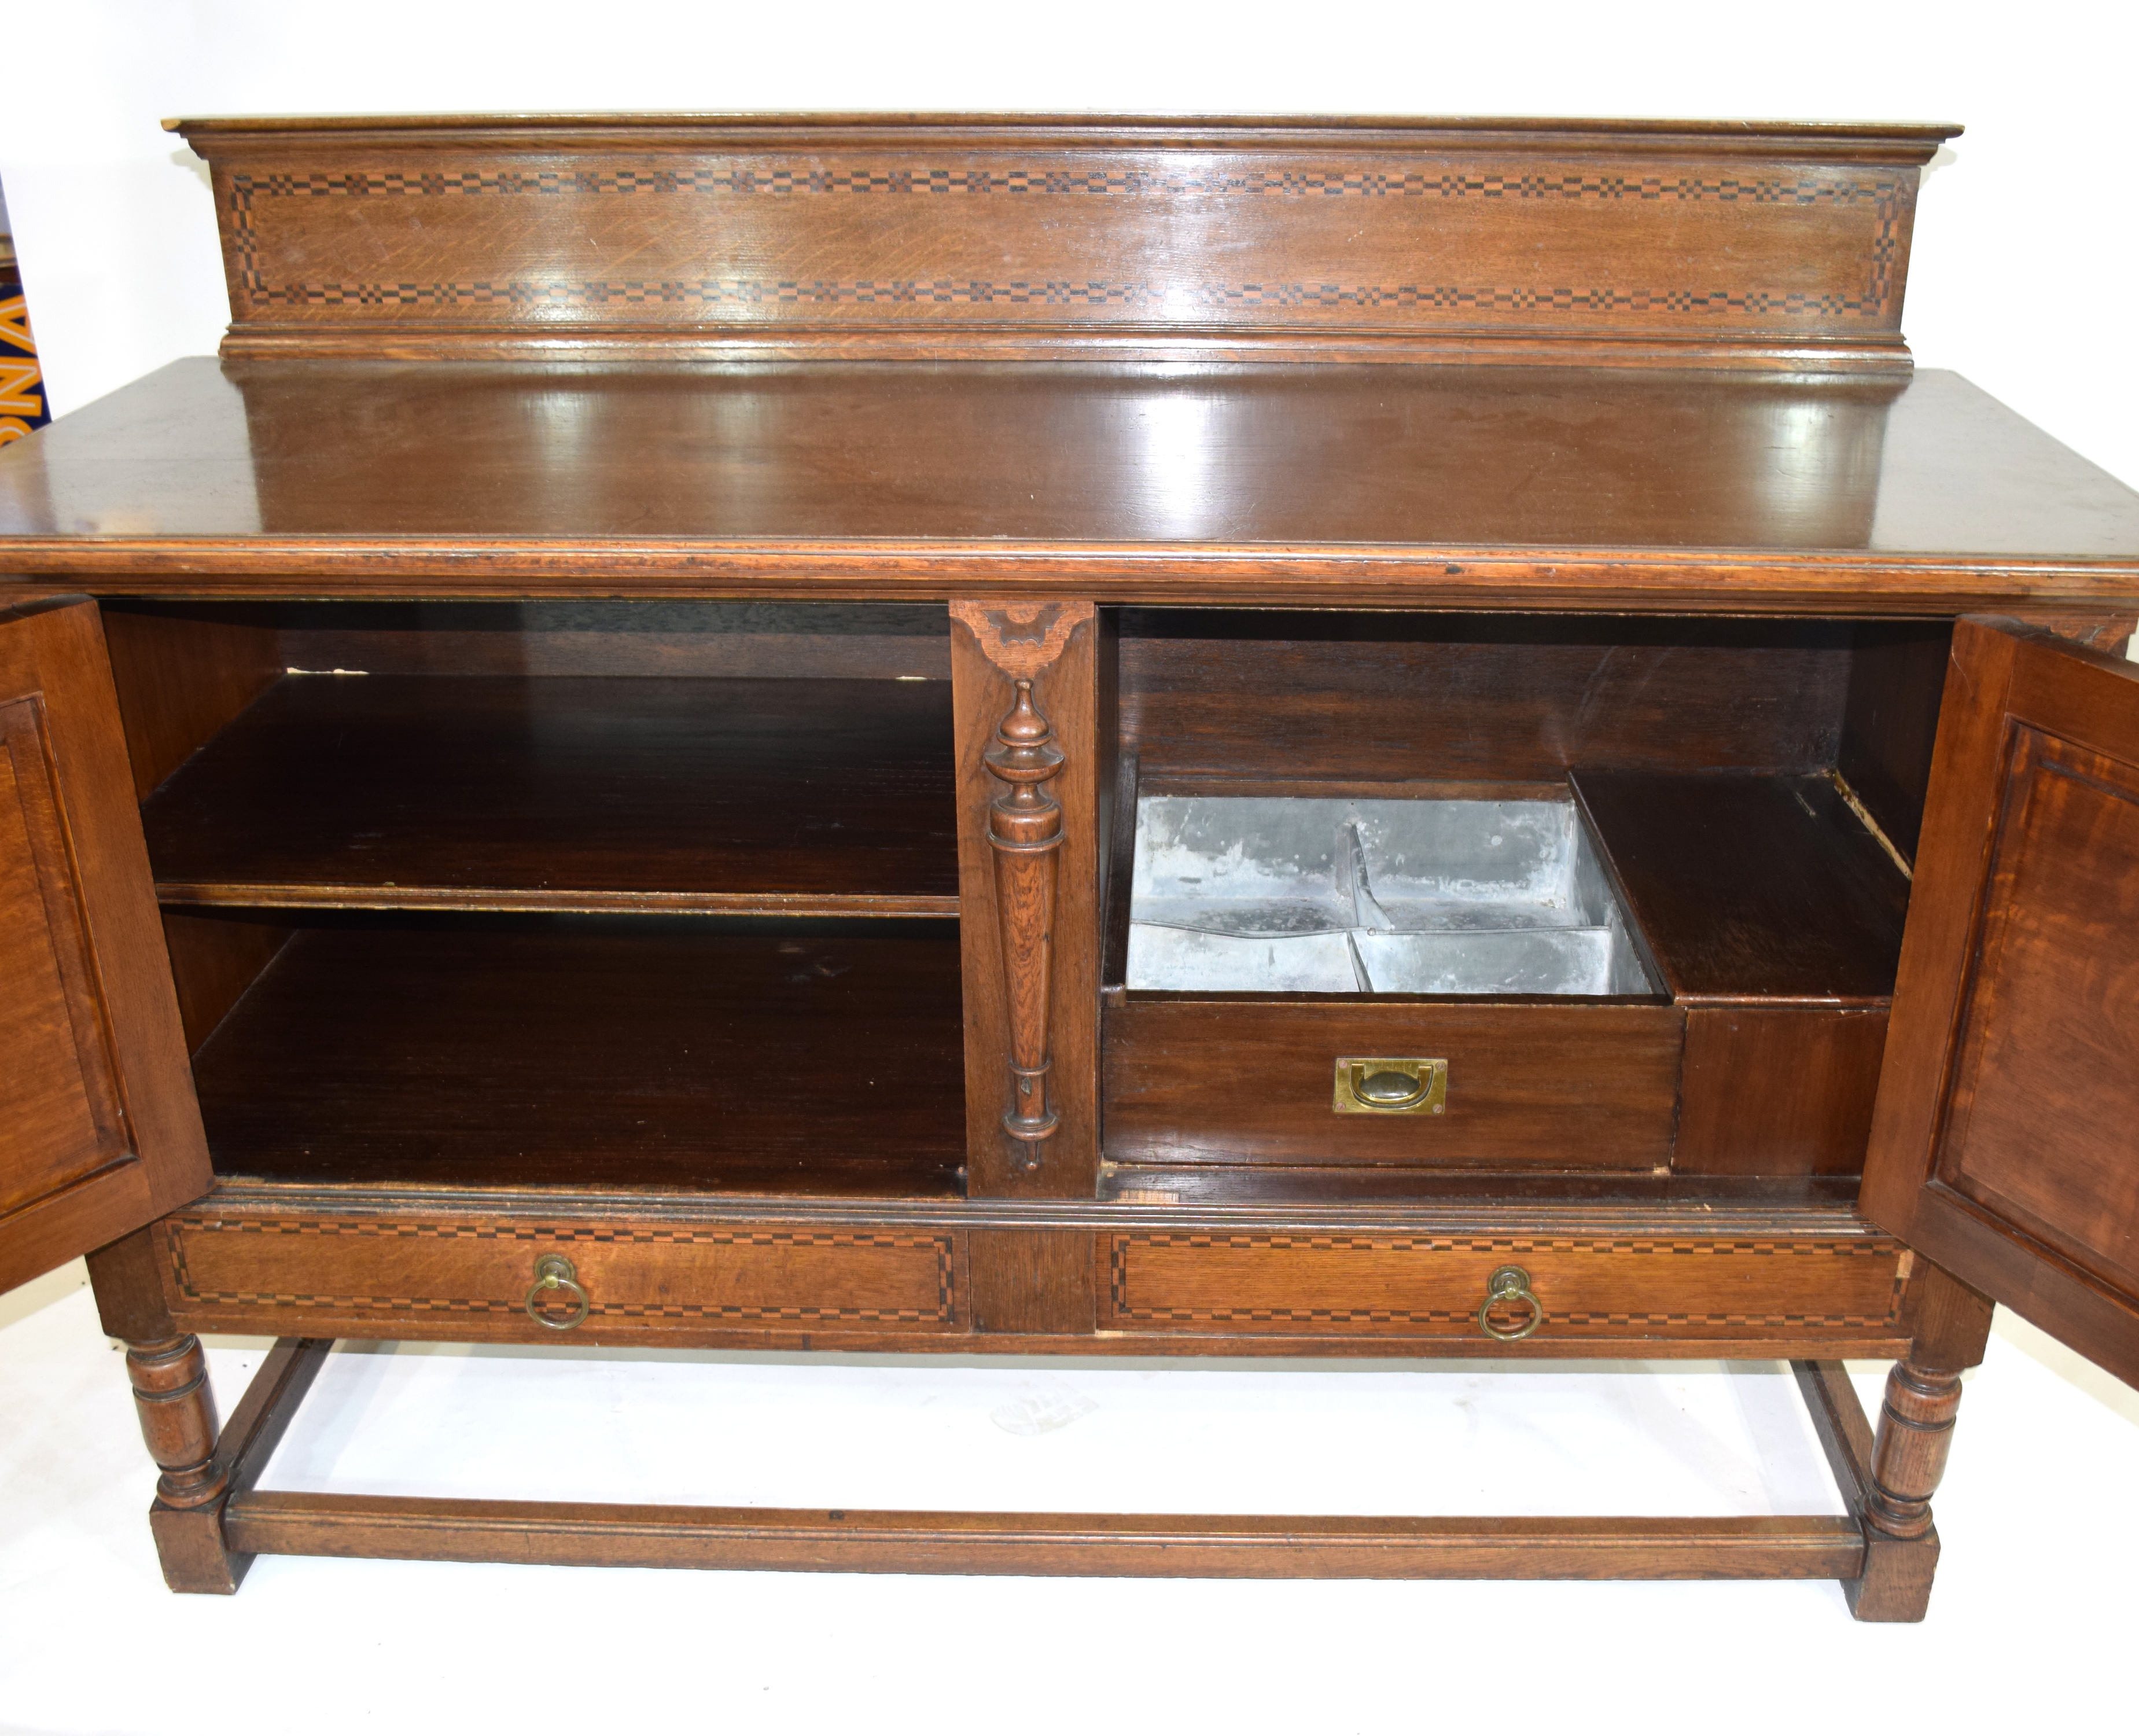 Good quality early 20th century oak sideboard in 17th century style having a chequered inlaid - Image 2 of 4